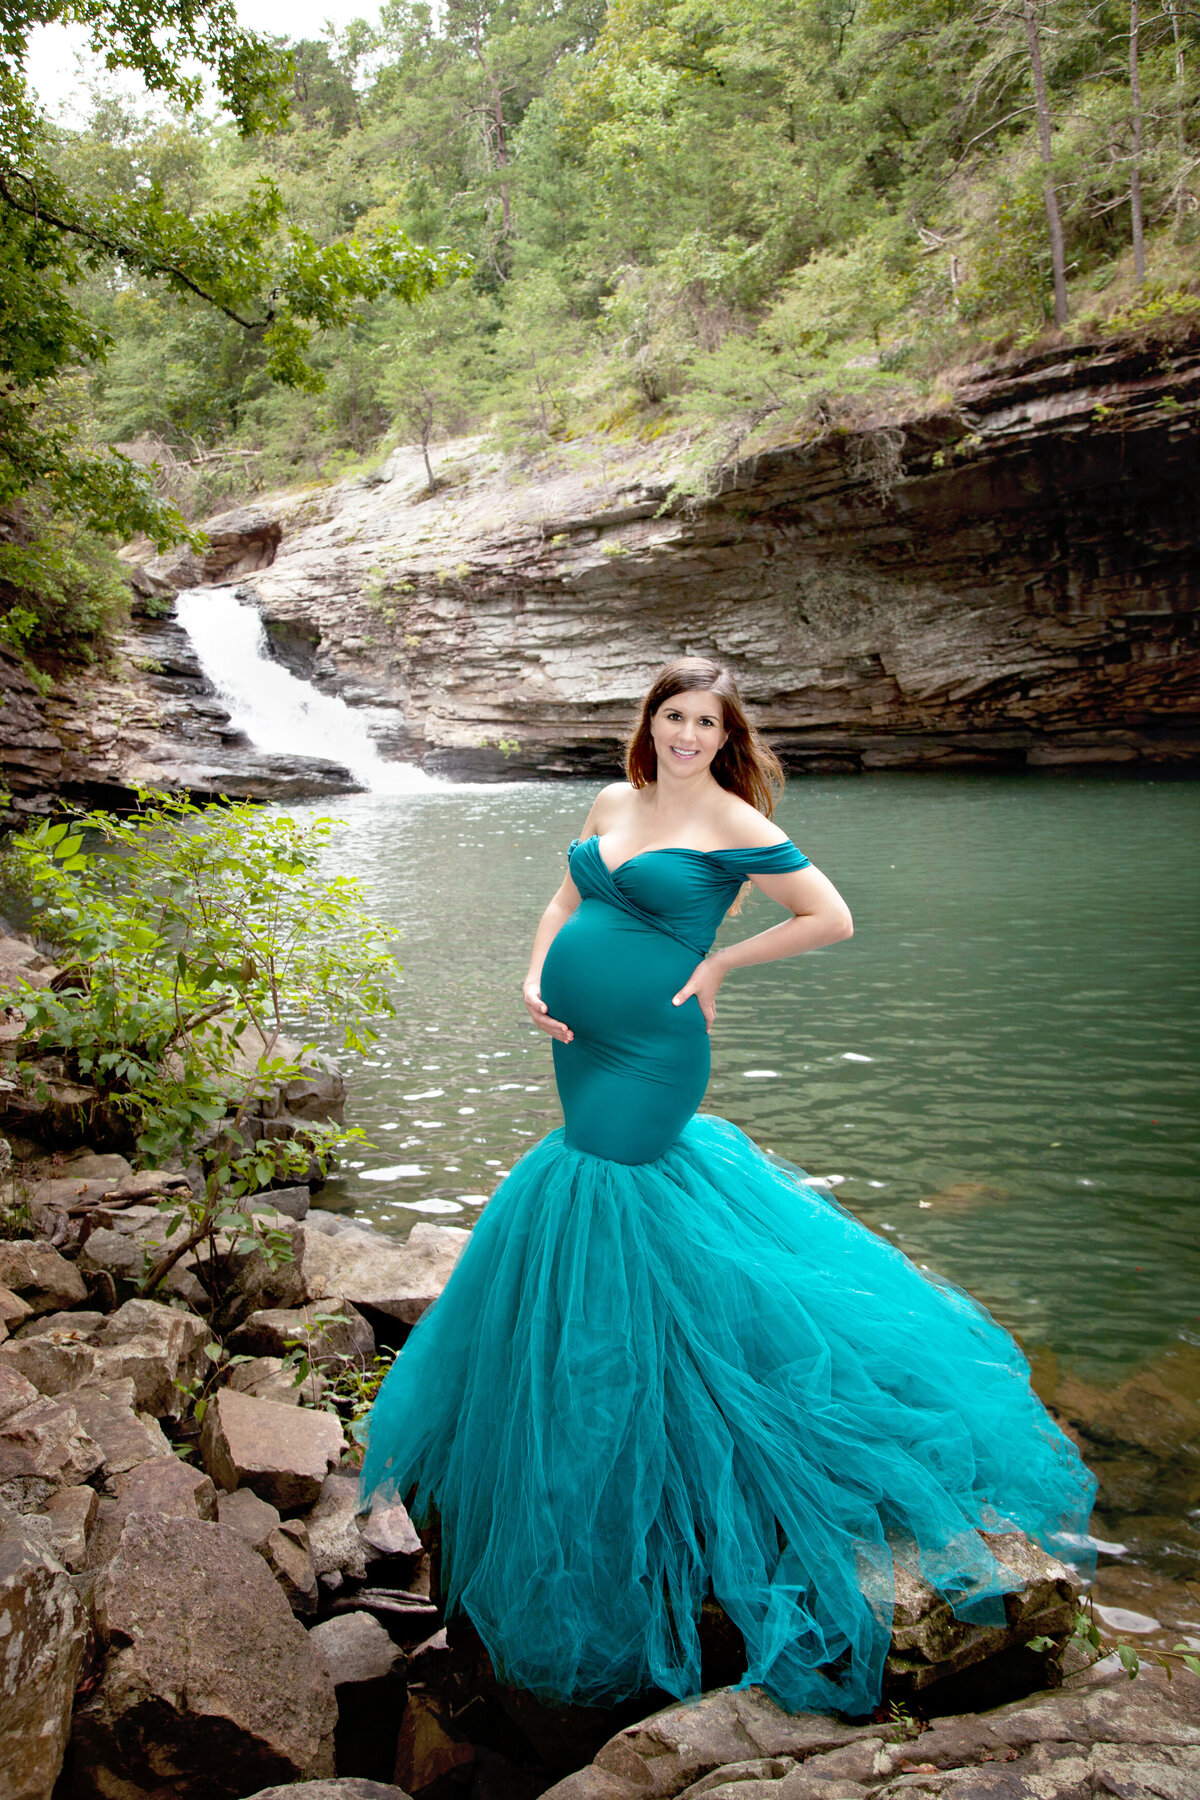 Sara-J-Williams-Photography-Georgia-Maternity-Portraits-20-Waterfall-Teal-Gown